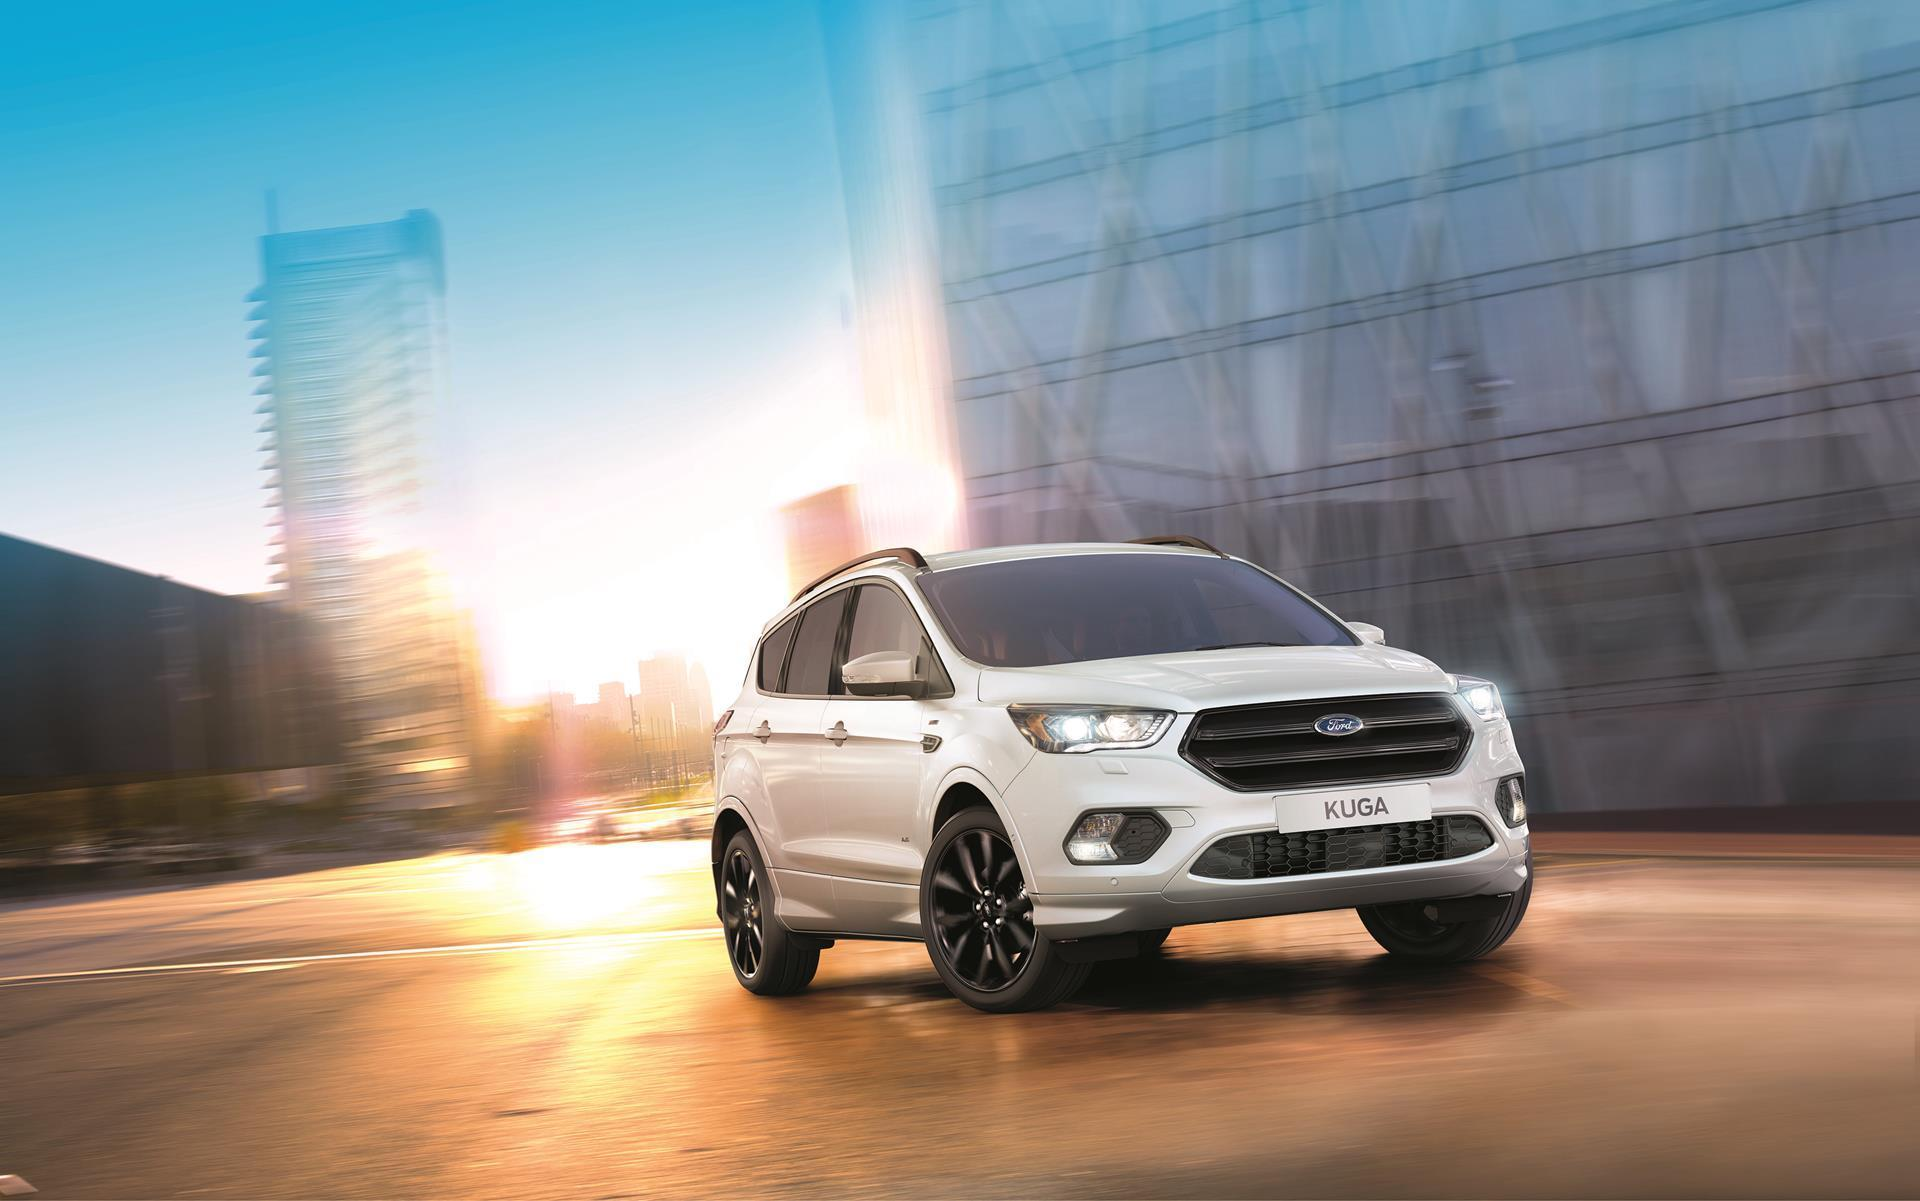 2016 Ford Kuga ST-Line Wallpaper and Image Gallery